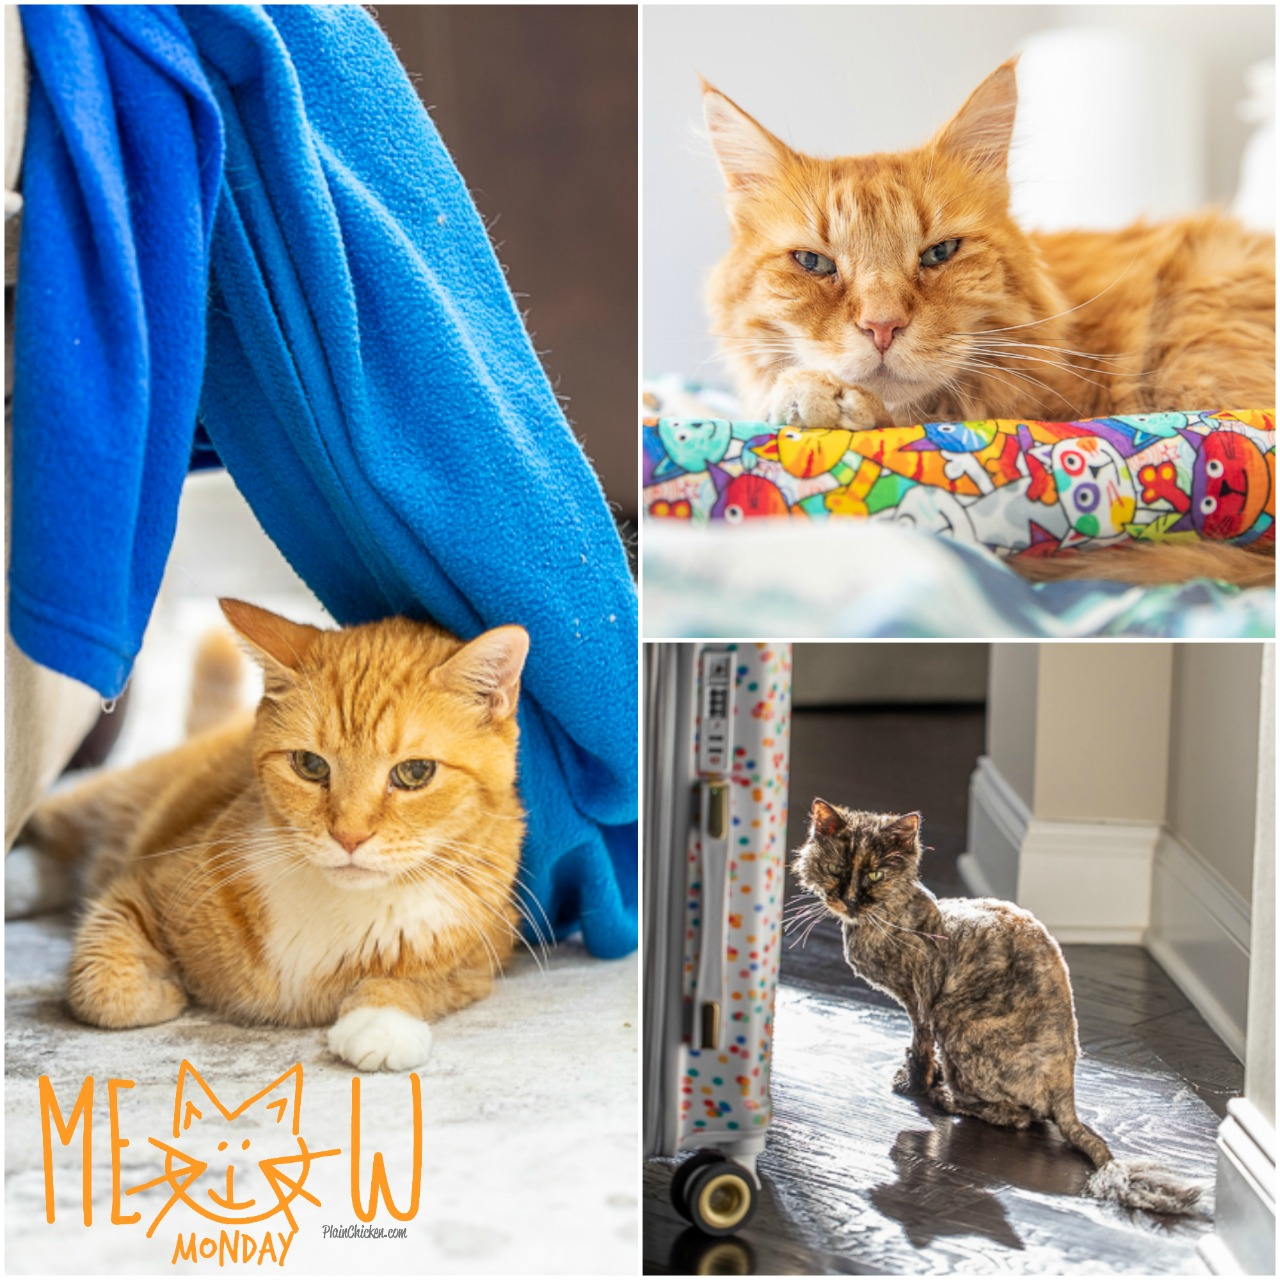 Meow Monday - pictures of cute cats to start your week! Come see what Jack, Squeaky, and Felix have been up to! #cats #cat